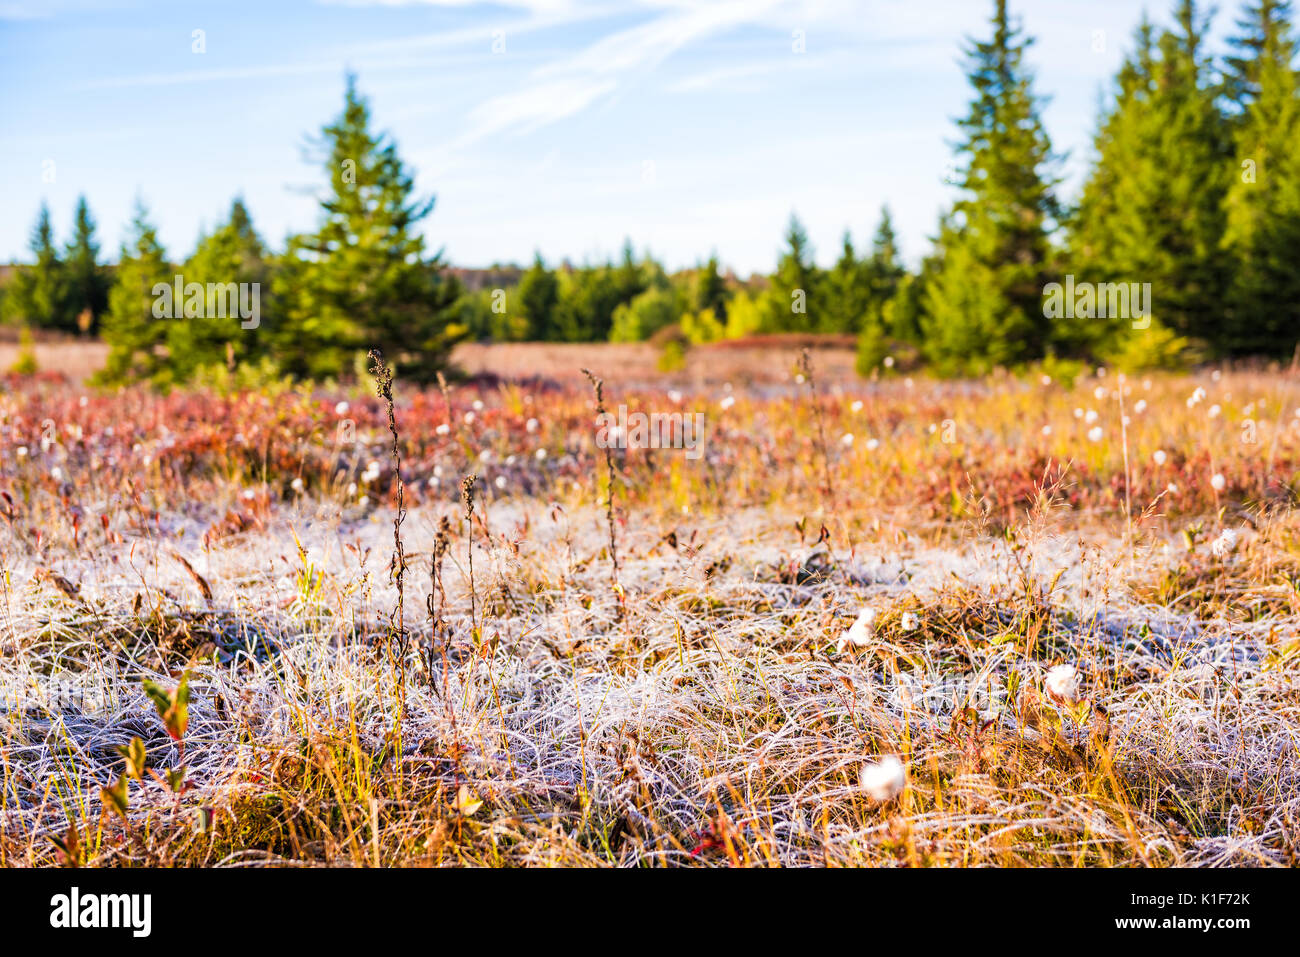 Icy frost on dry tall grass meadow illuminated by morning sunlight at Dolly Sods, West Virginia - Stock Image